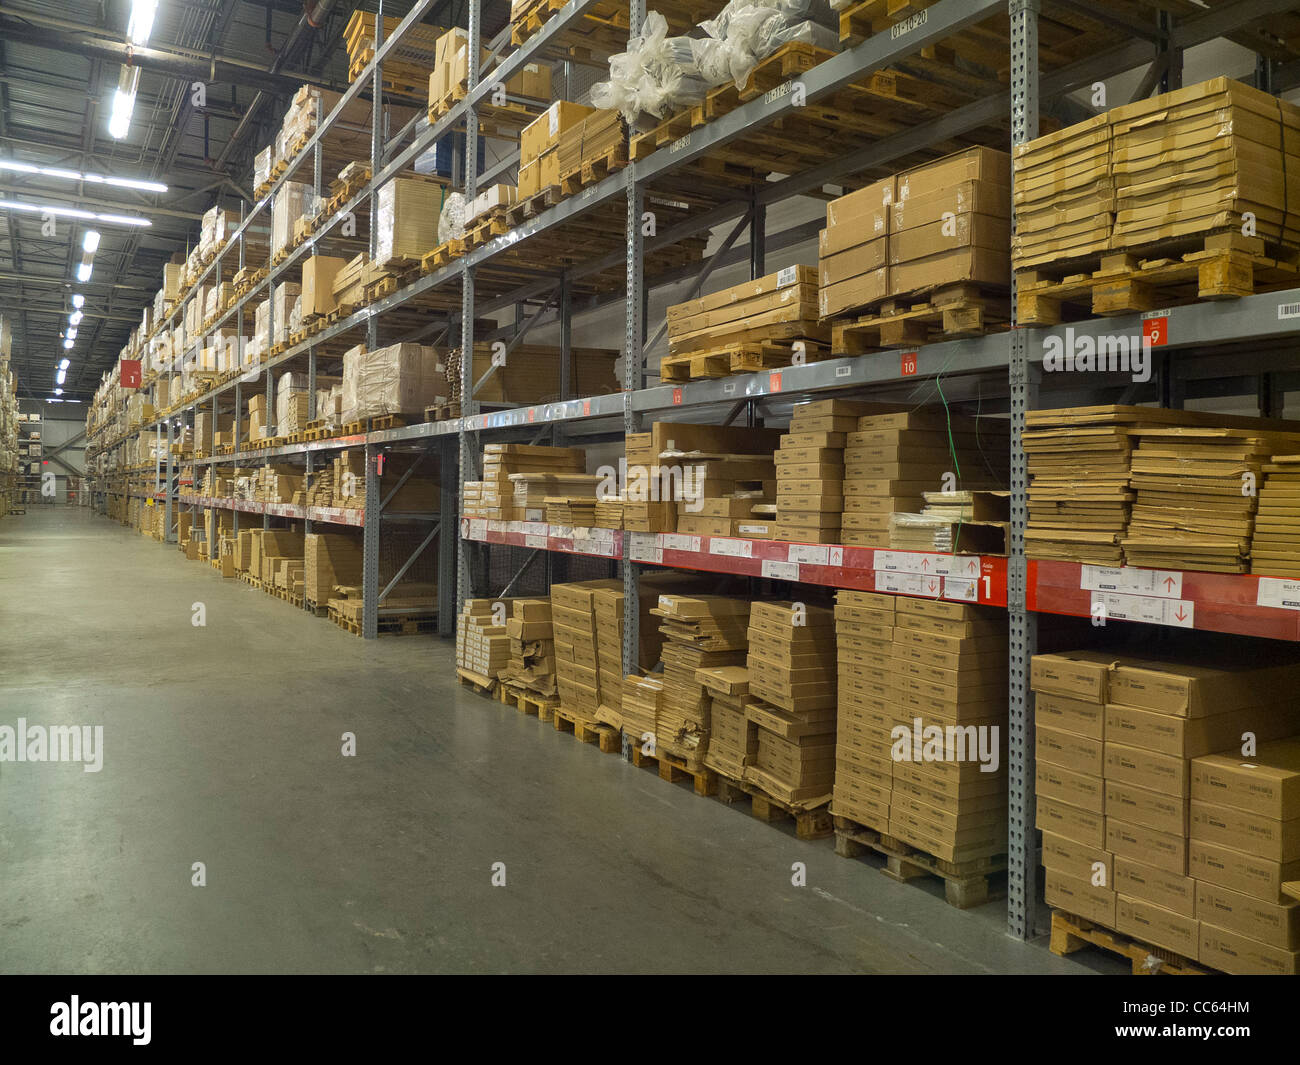 ikea store warehouse stock photo royalty free image 41931952 alamy. Black Bedroom Furniture Sets. Home Design Ideas